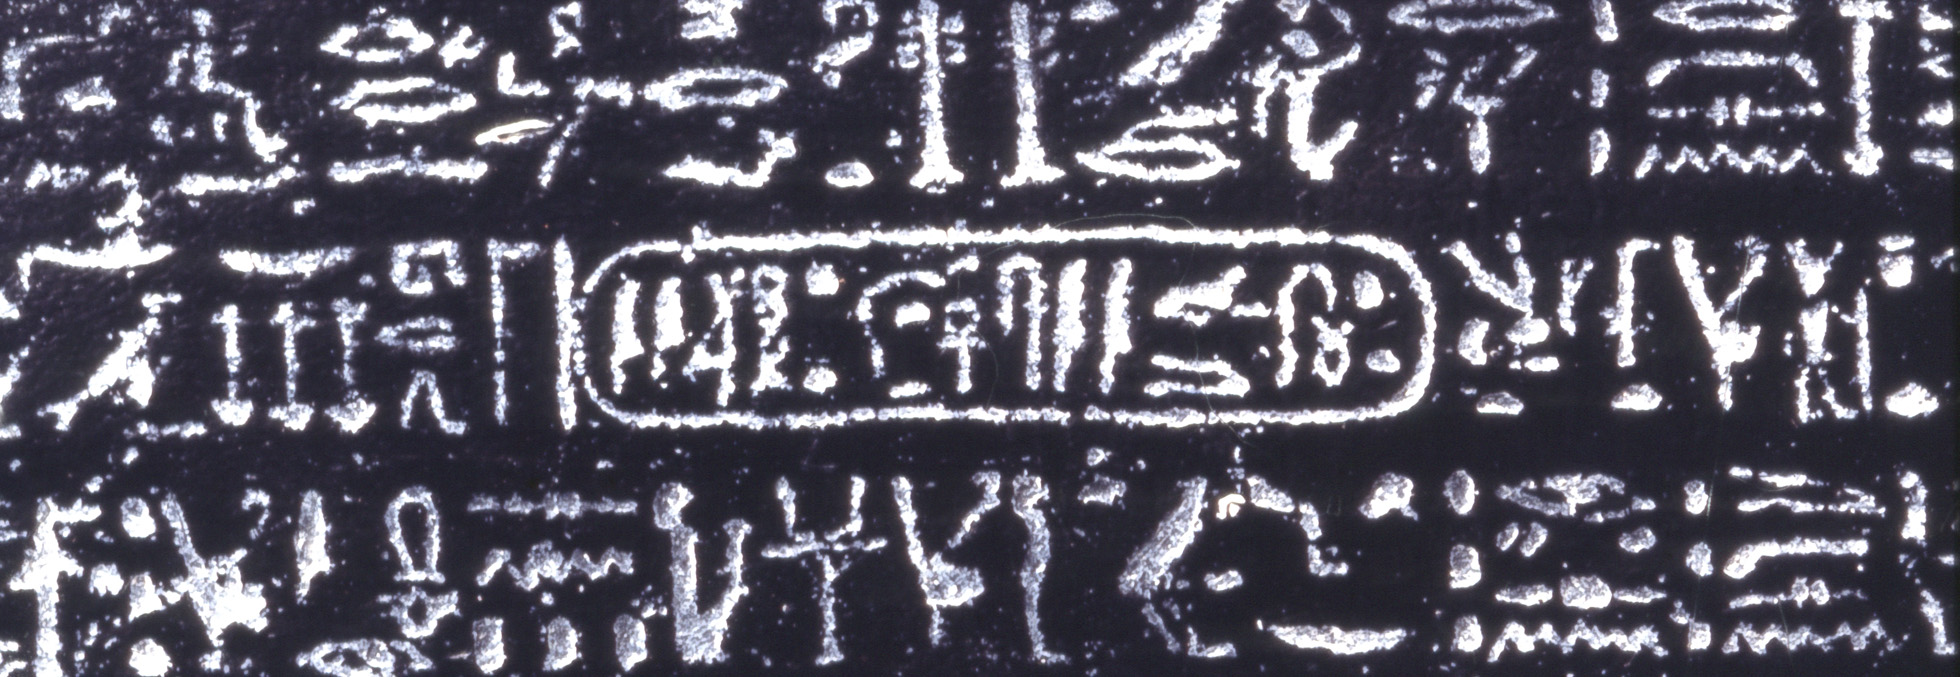 Everything You Ever Wanted To Know About The Rosetta Stone The